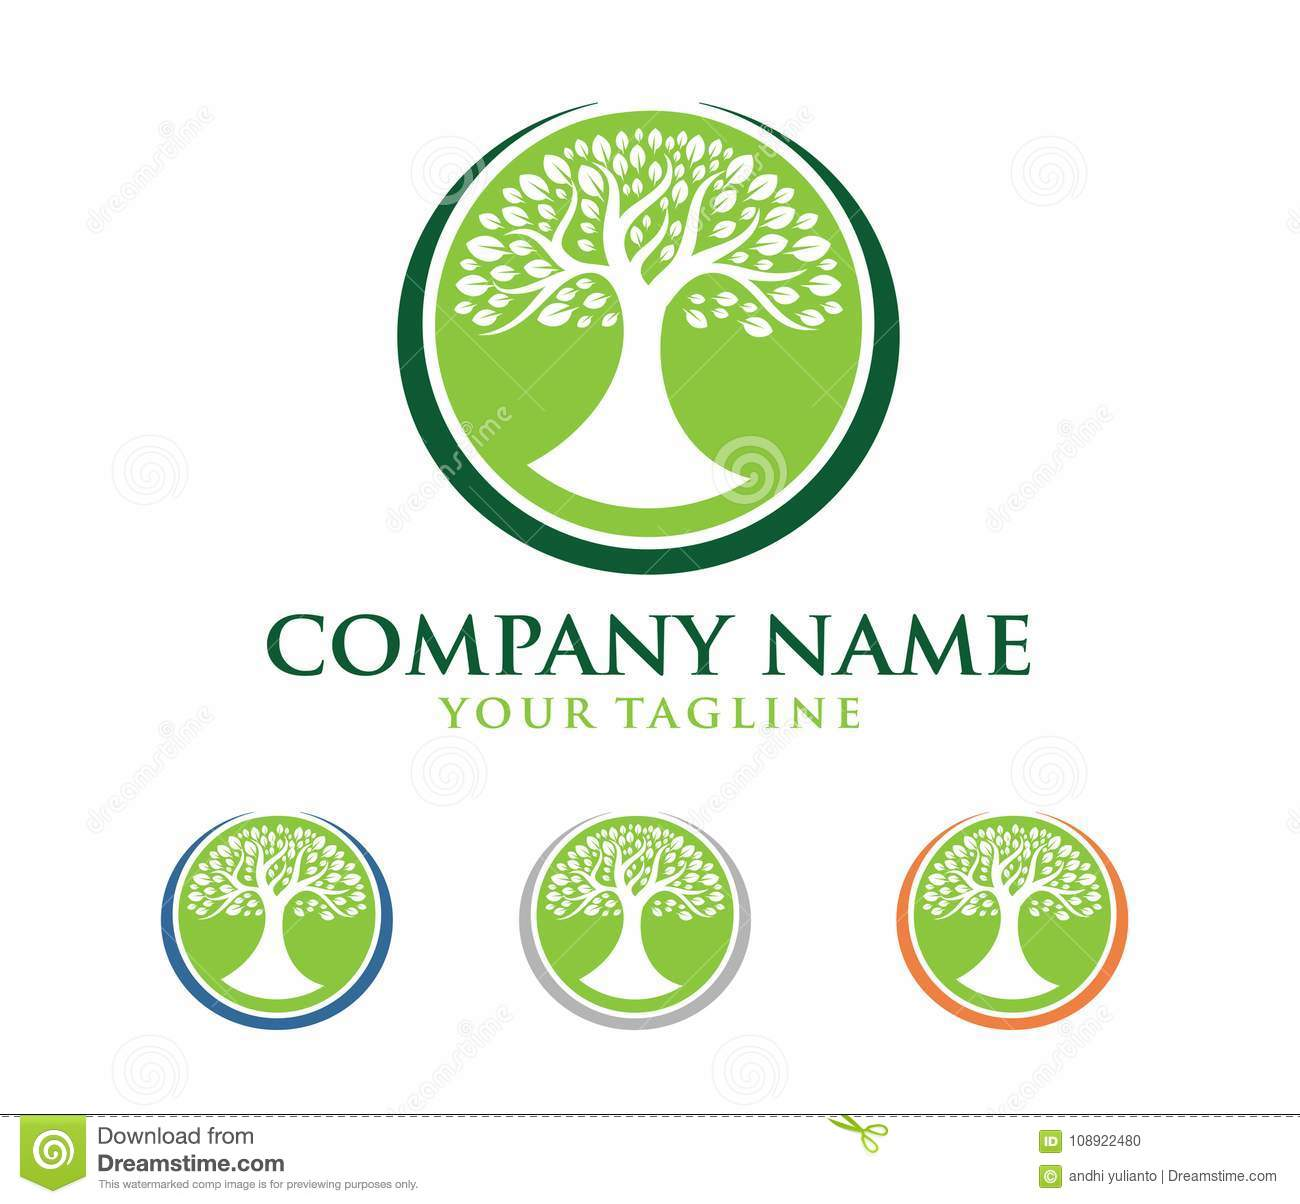 Vector Logo Design Illustration Of Oak Tree Wise And Strong